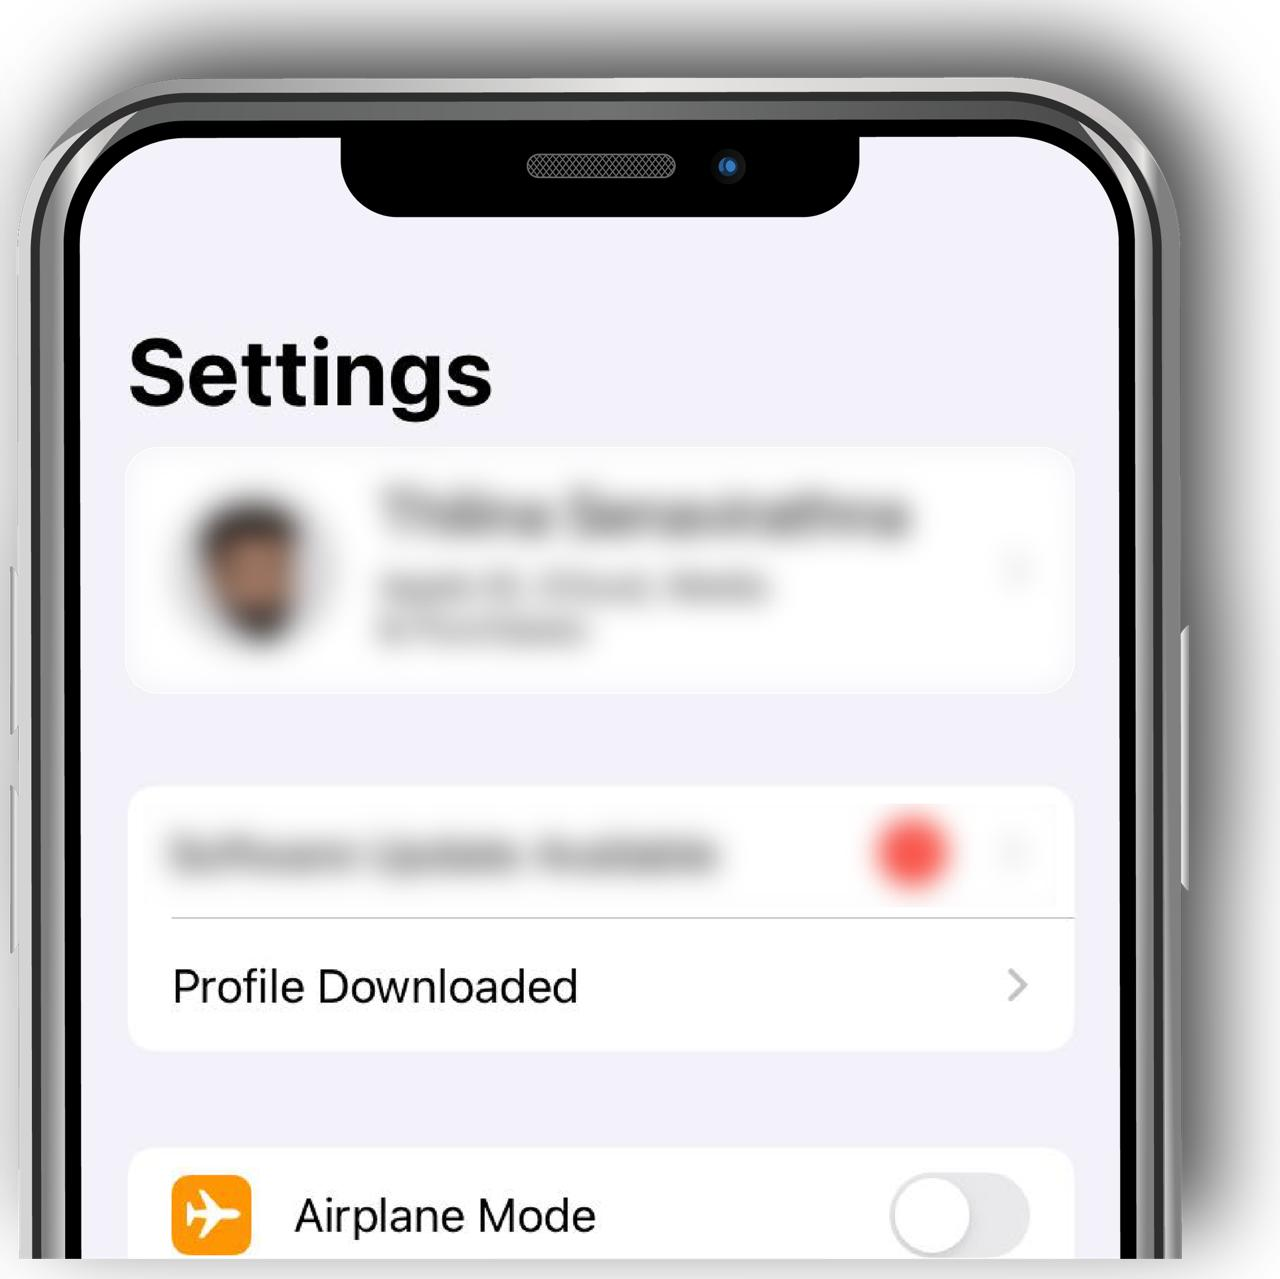 go to settings and tap profile downloaded